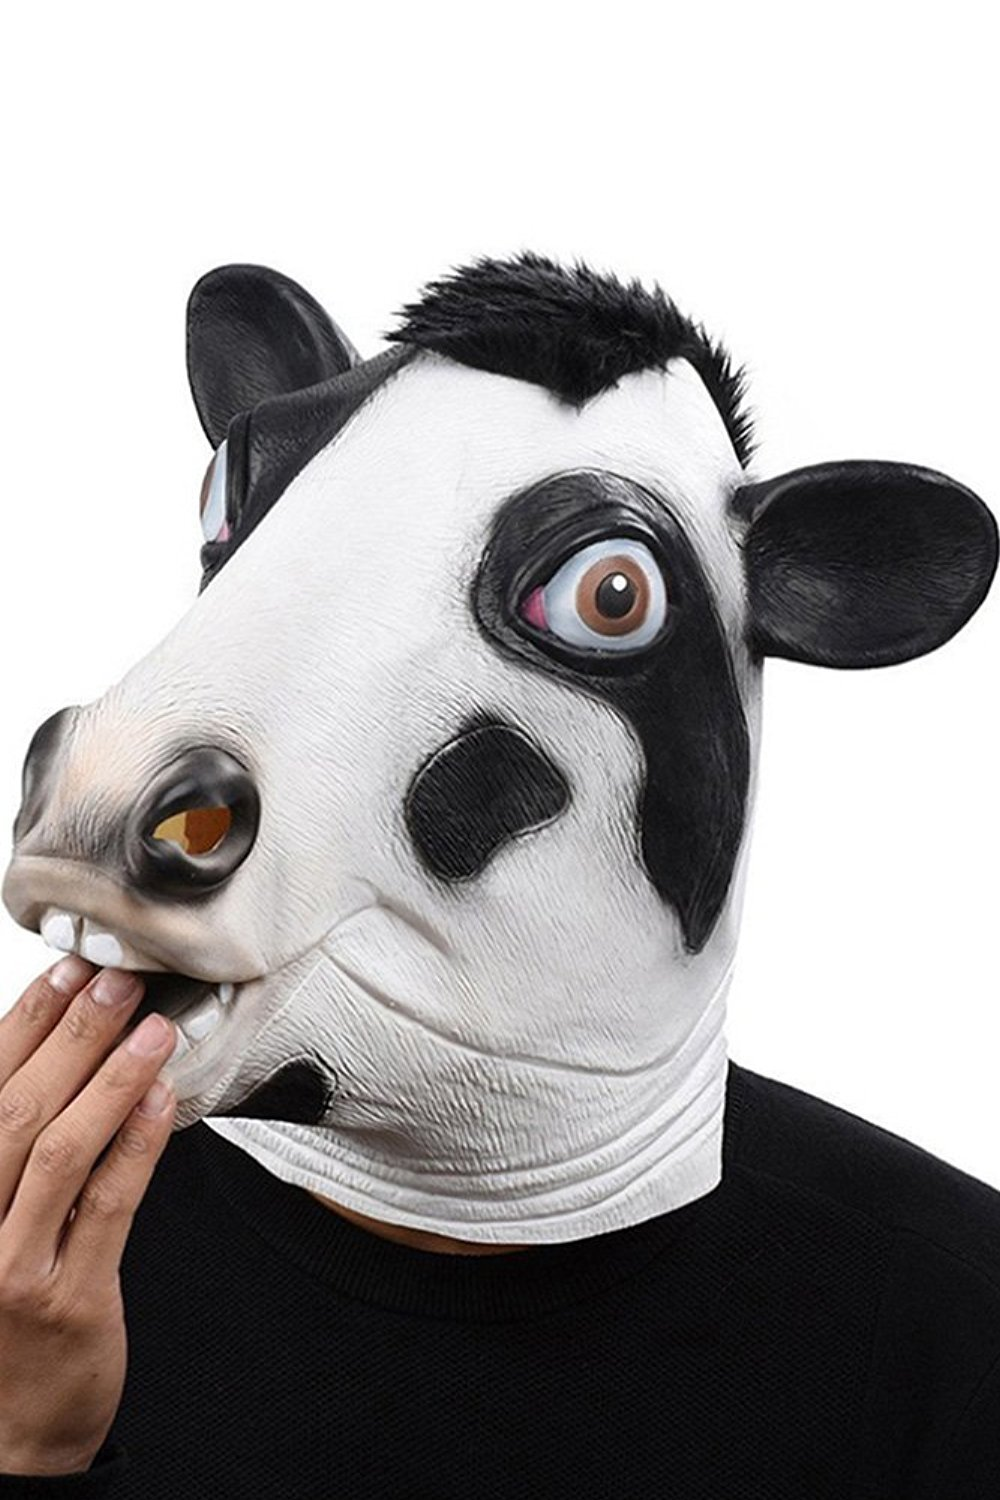 Primary image for Cosplay Halloween Costume Party Latex Dog Head Mask, Cow